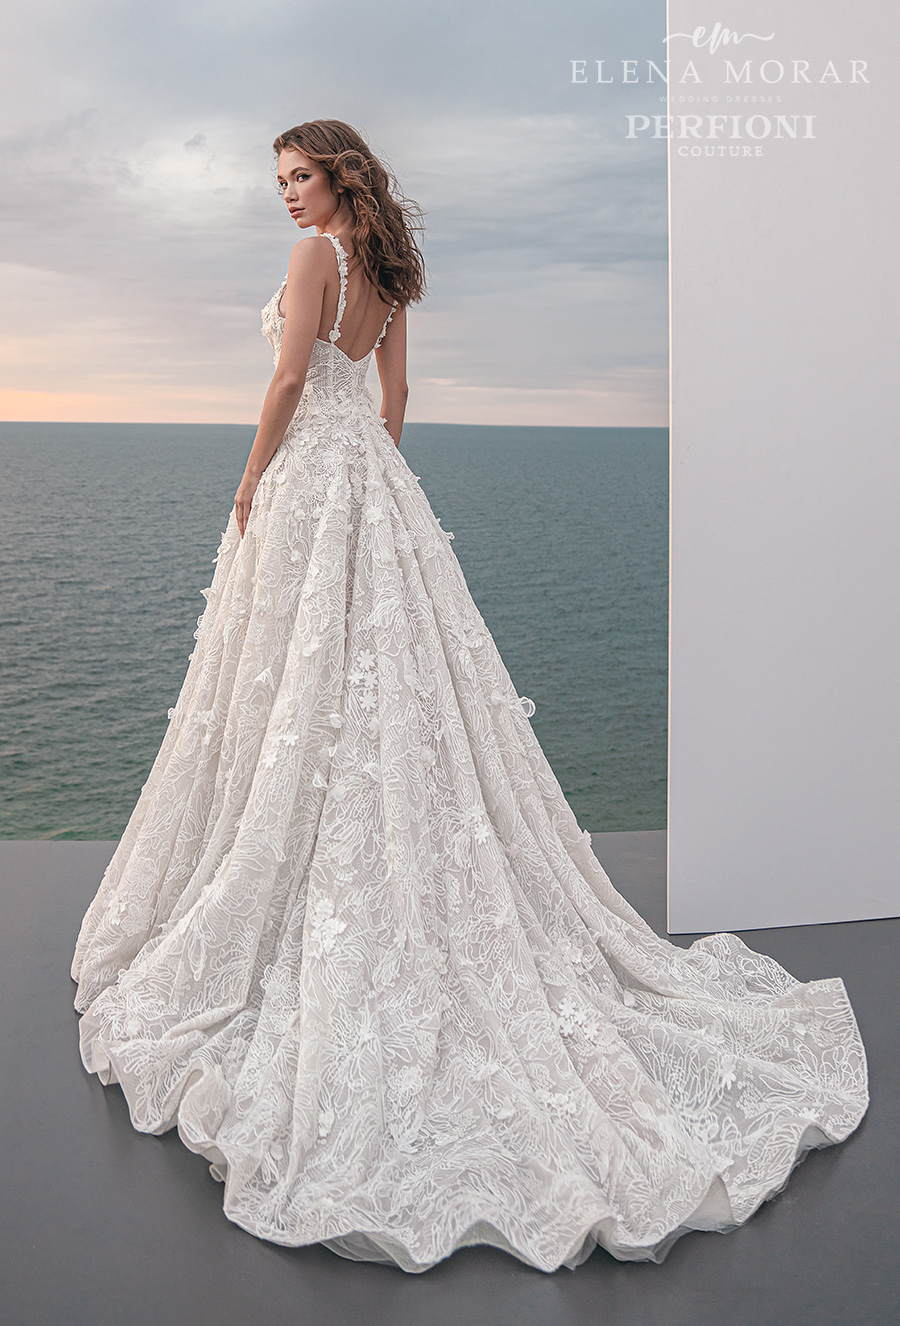 elena morar perfioni 2021 bridal romantic a line wedding gown 5